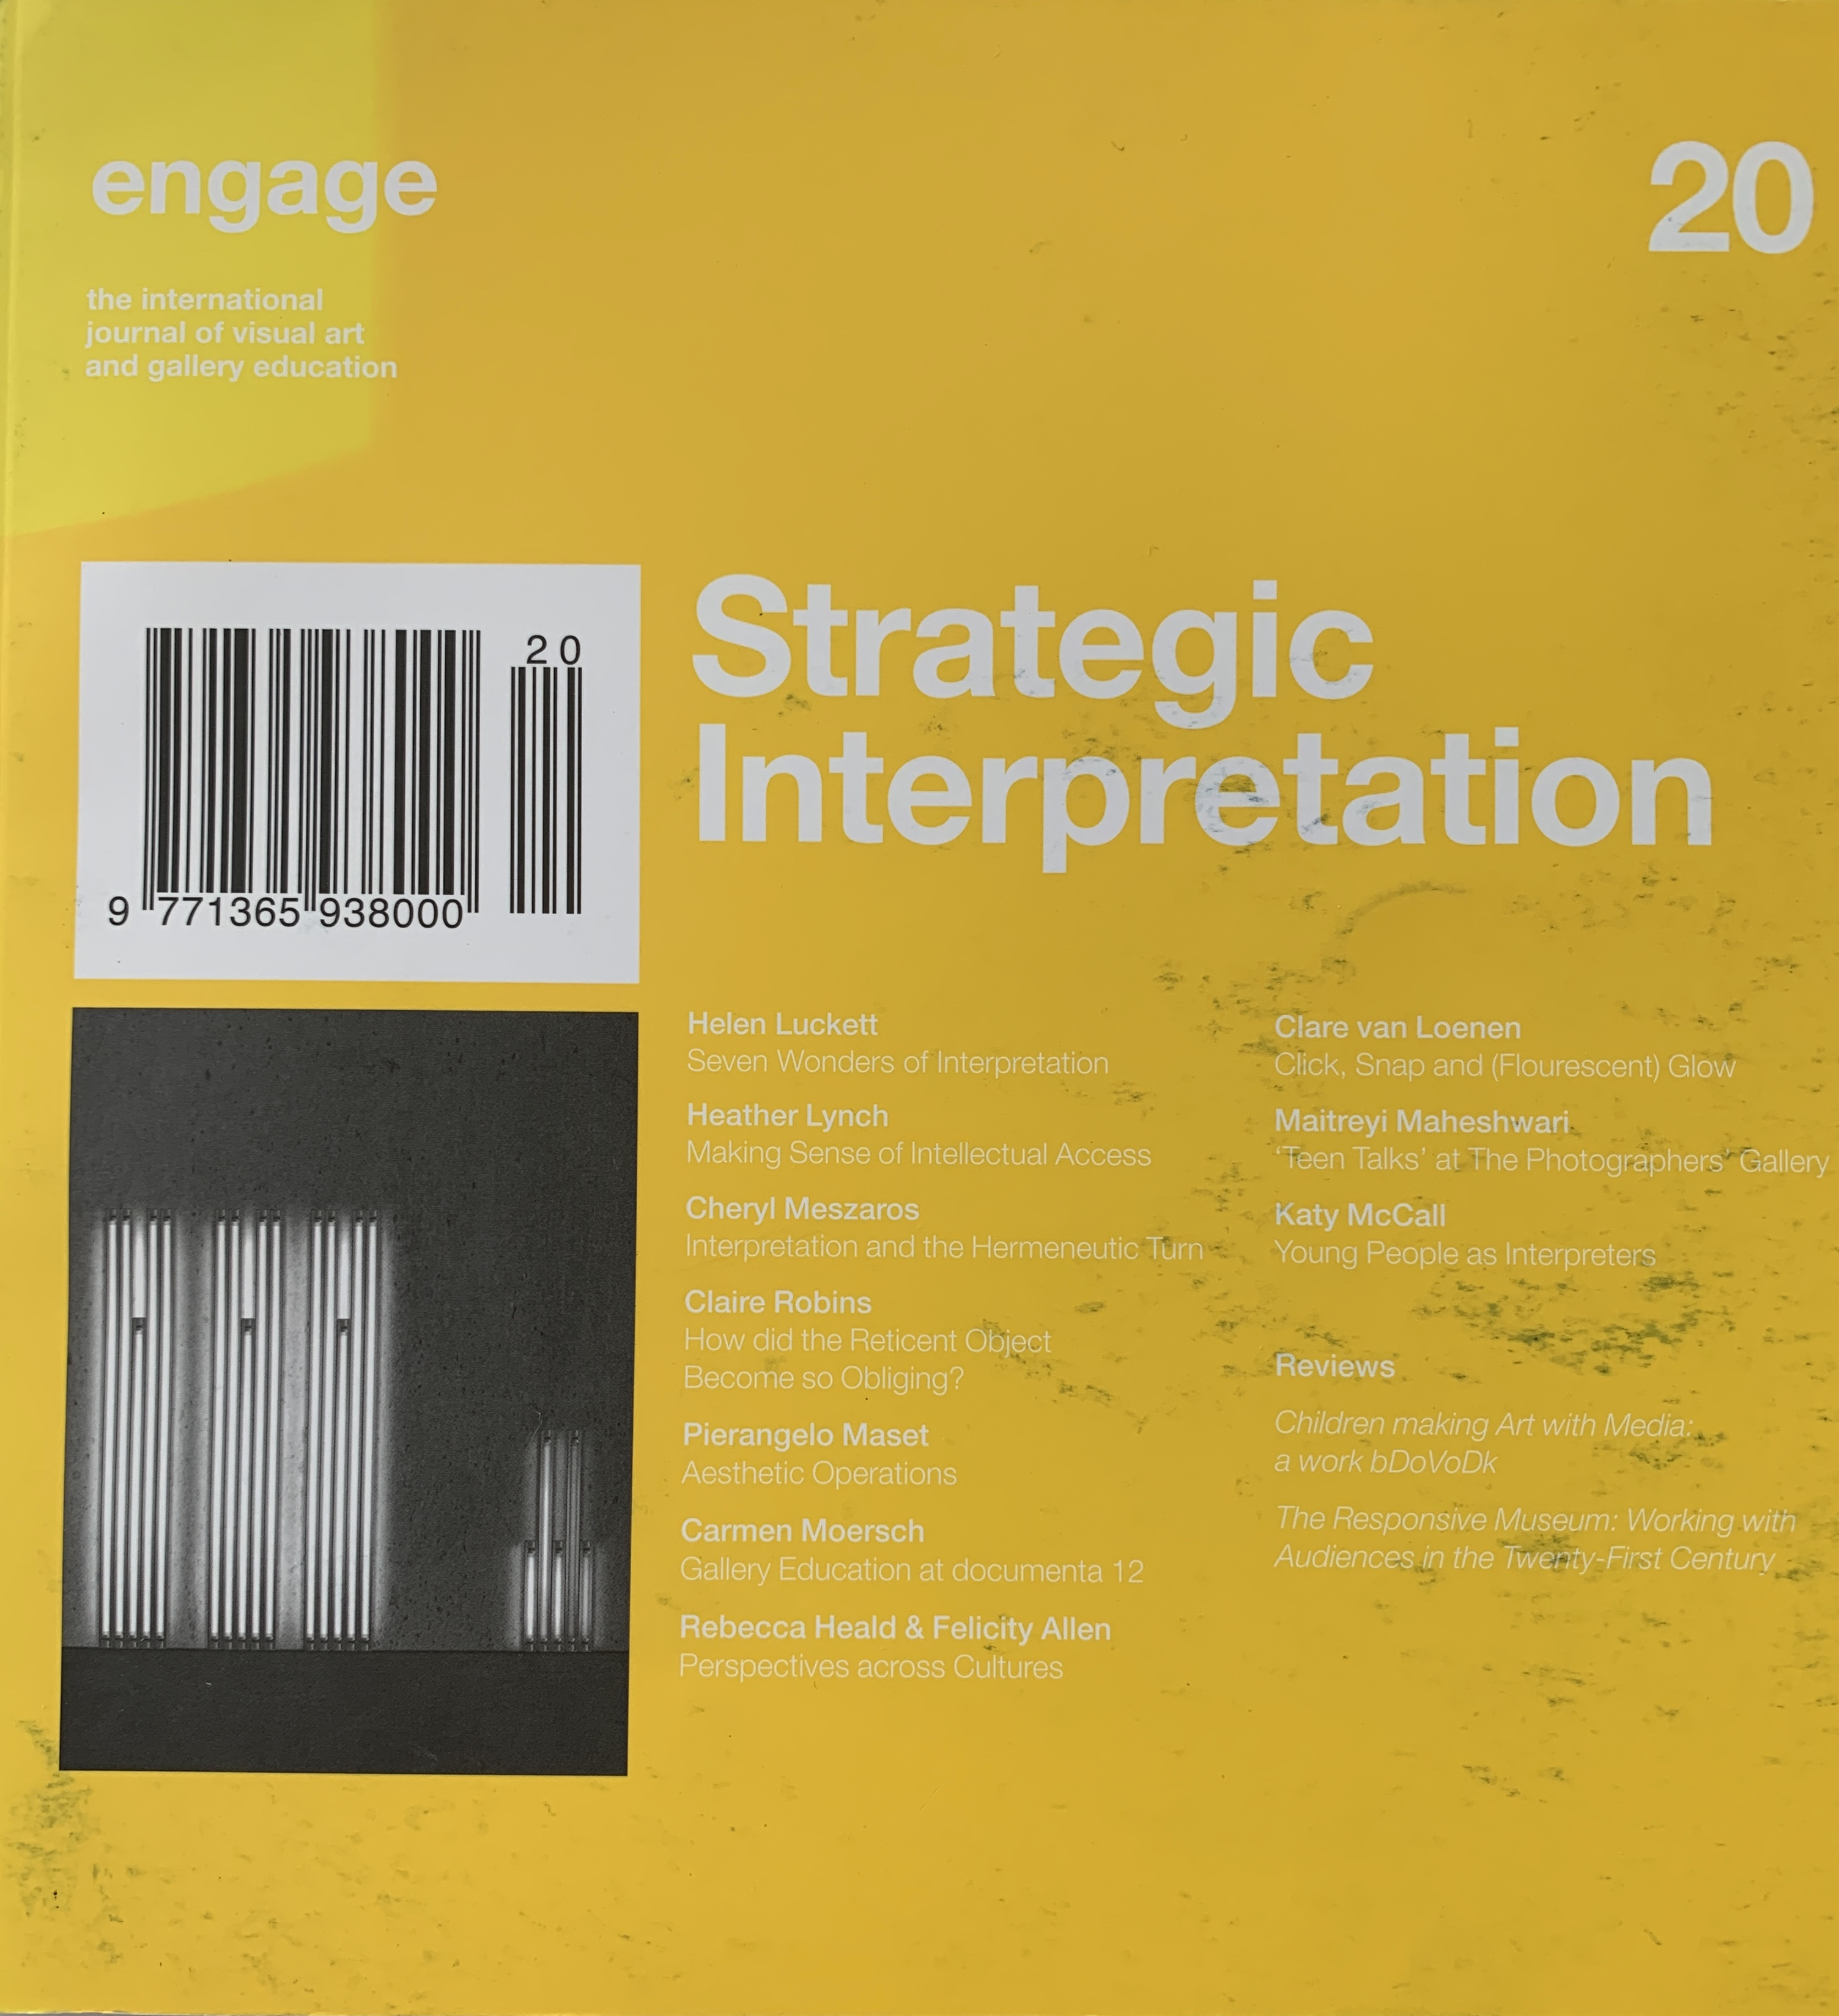 Perspectives Across Cultures With Rebecca Heald, 2007, Engage 20